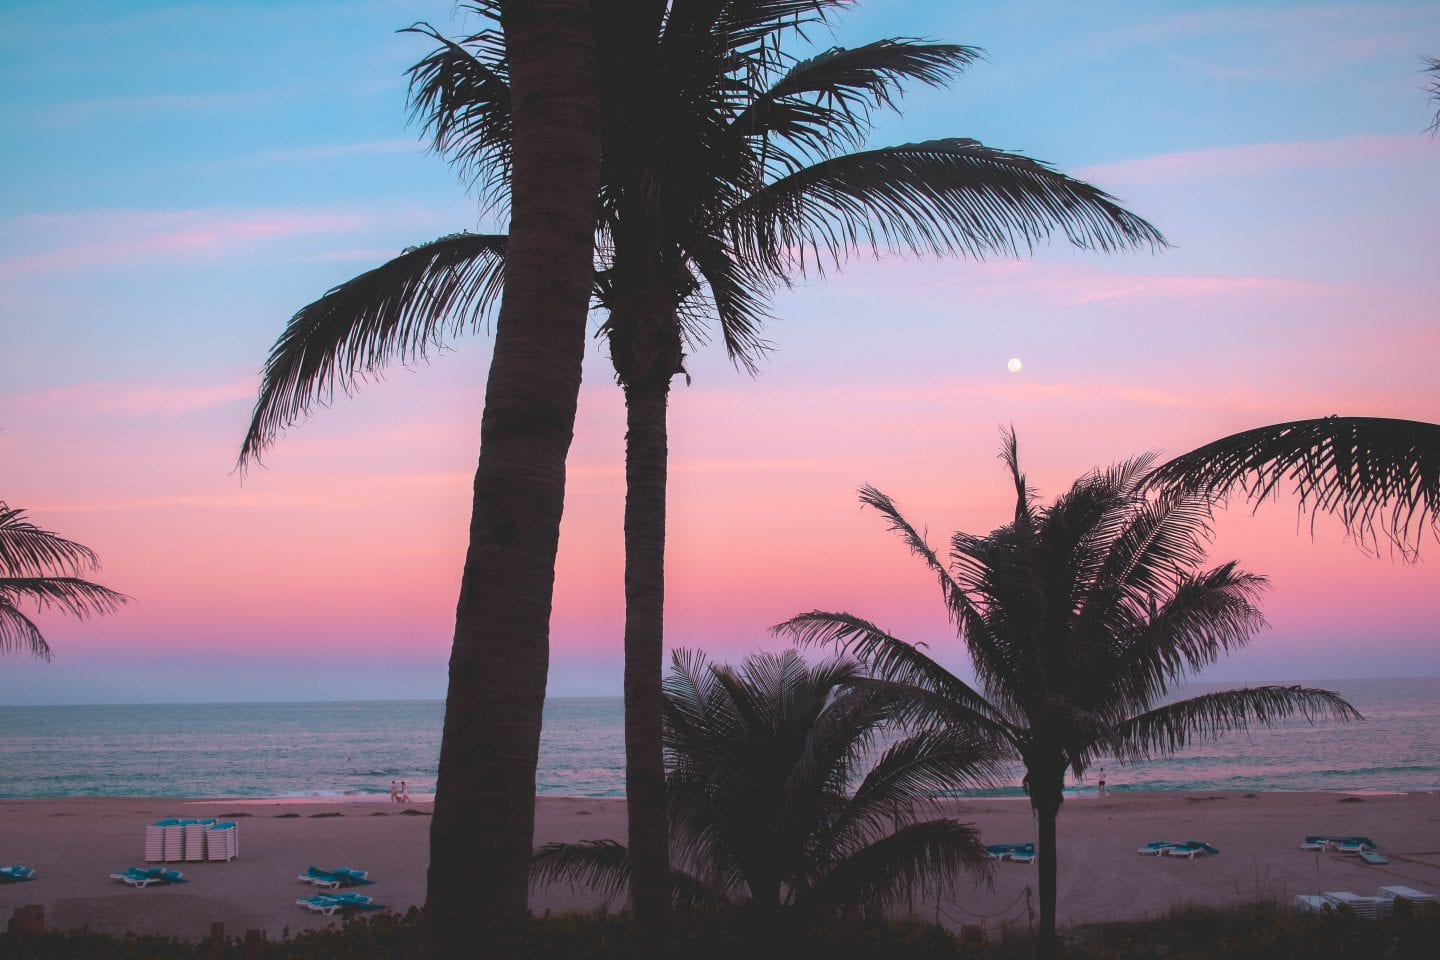 21 Photos To Inspire You To Visit The Palm Beaches, Florida